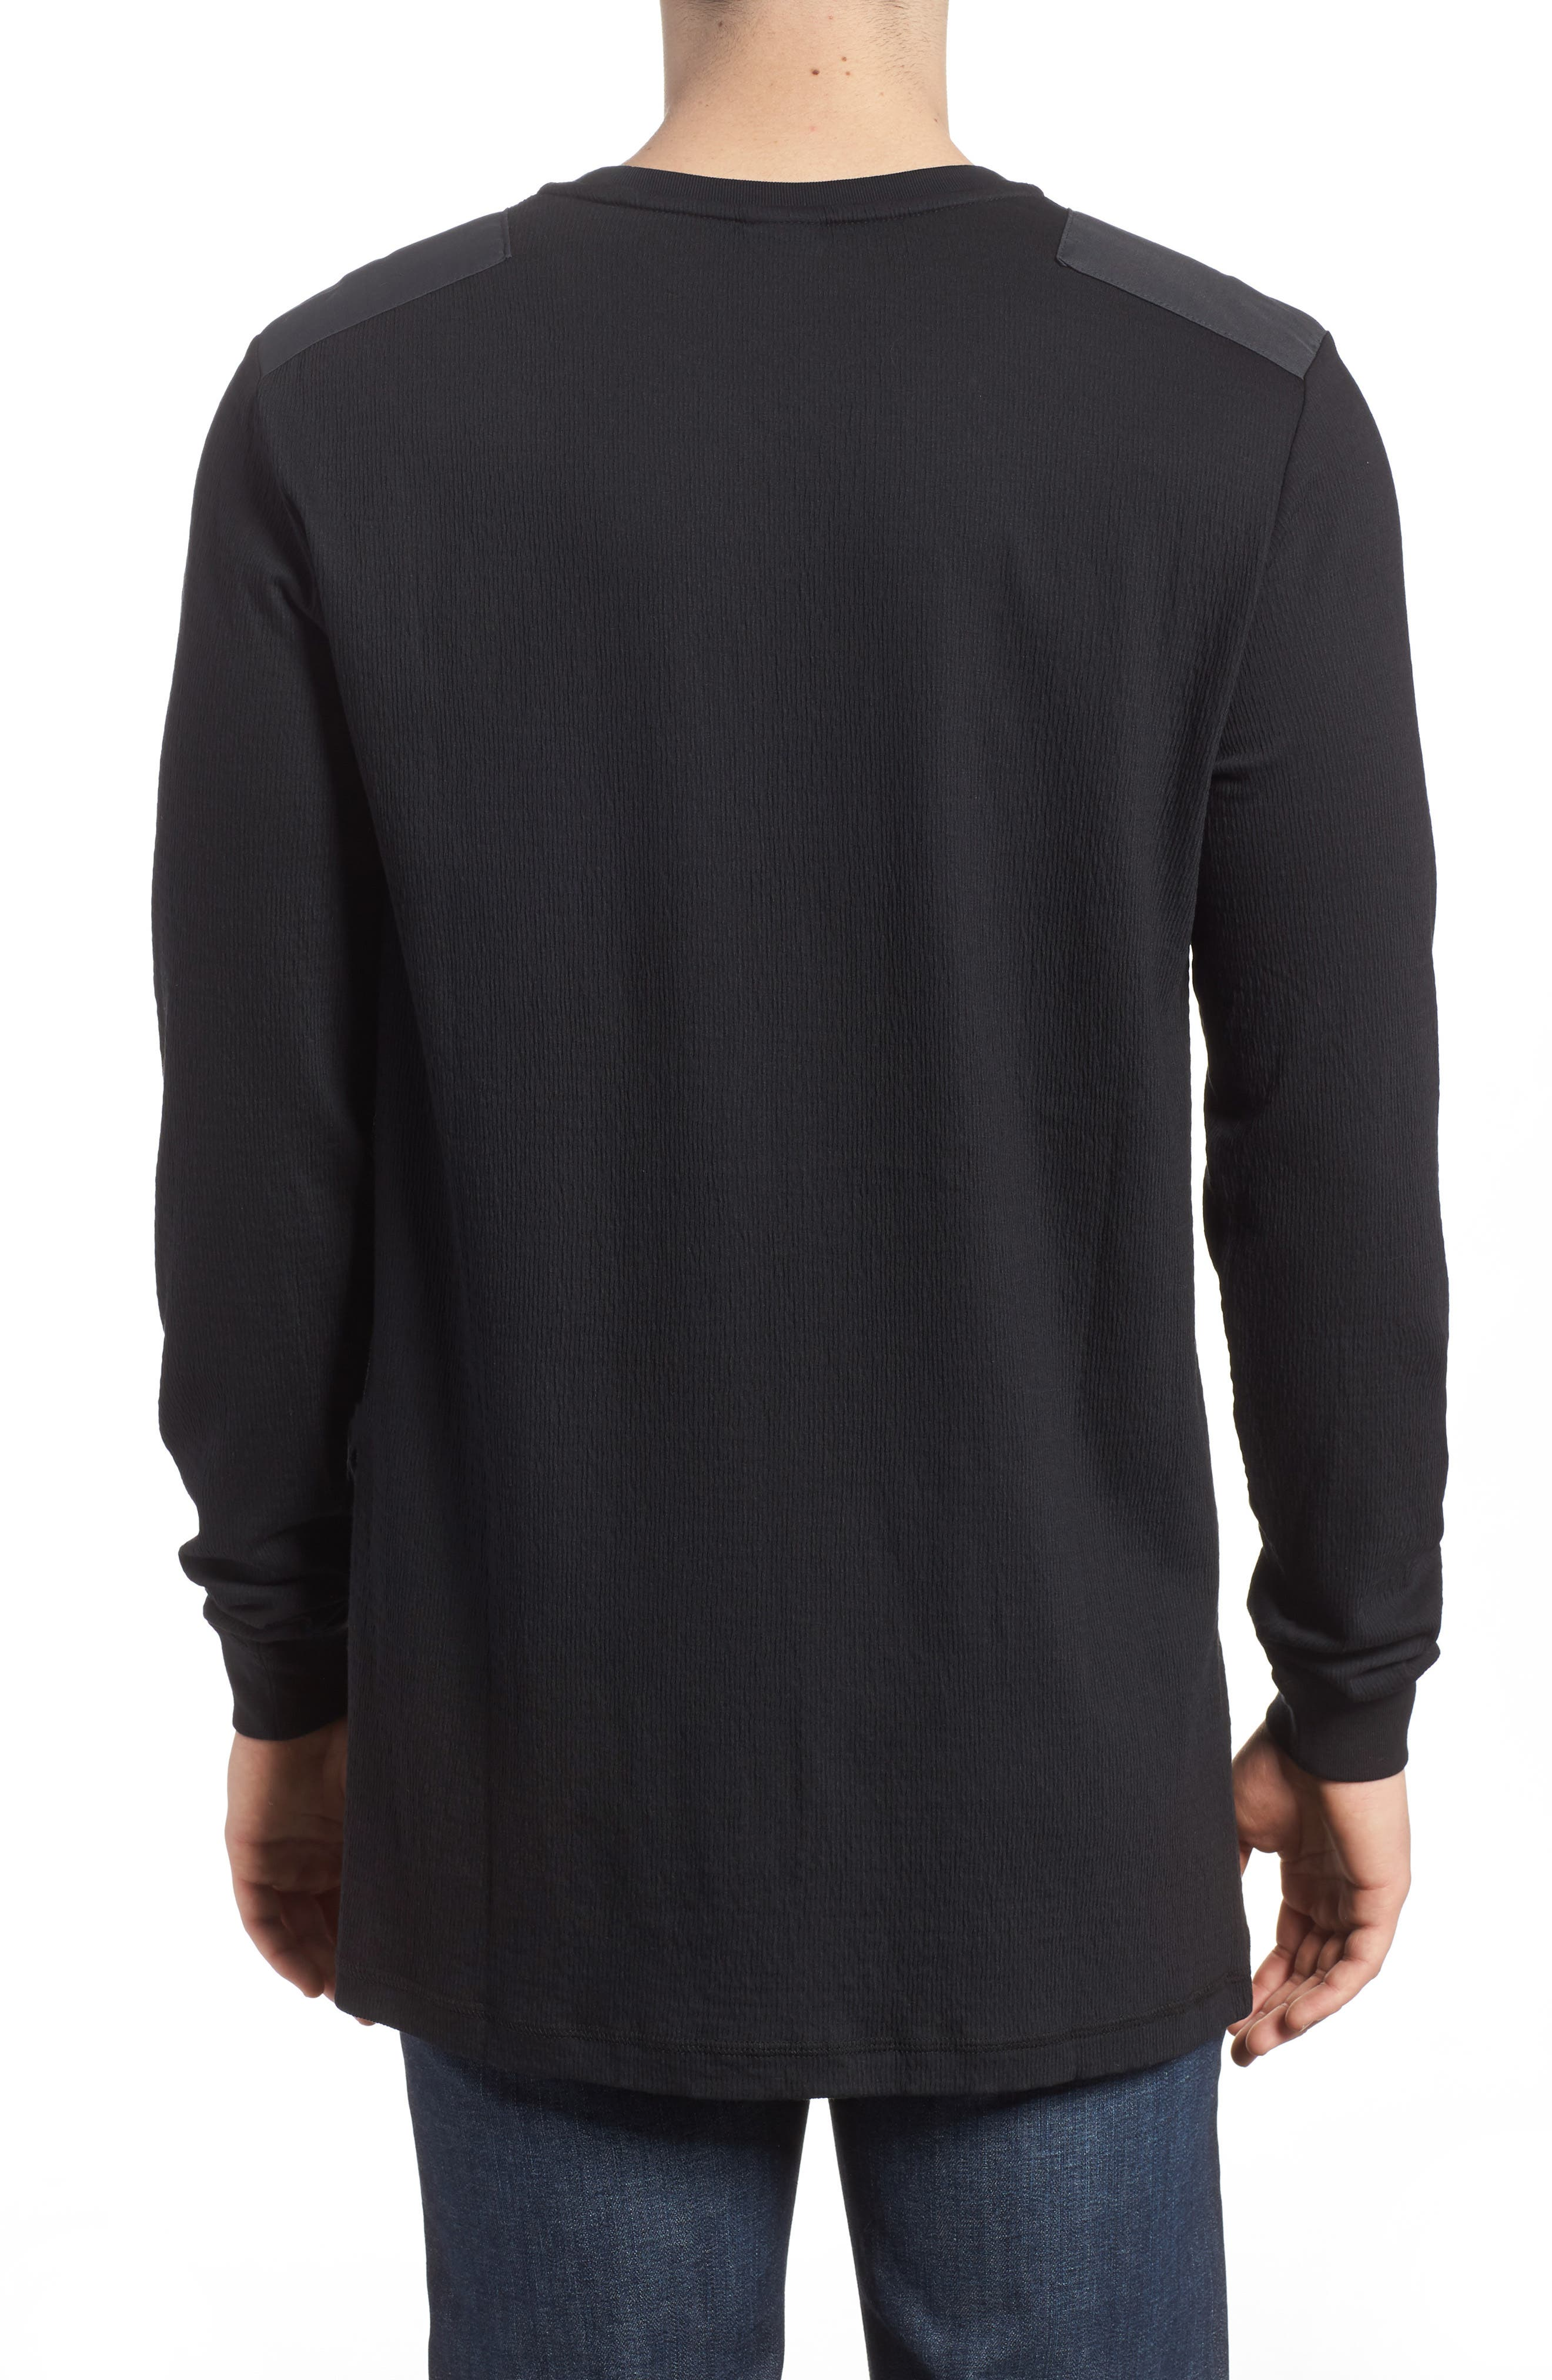 Sportswear AF-1 Long Sleeve Shirt,                             Alternate thumbnail 2, color,                             010